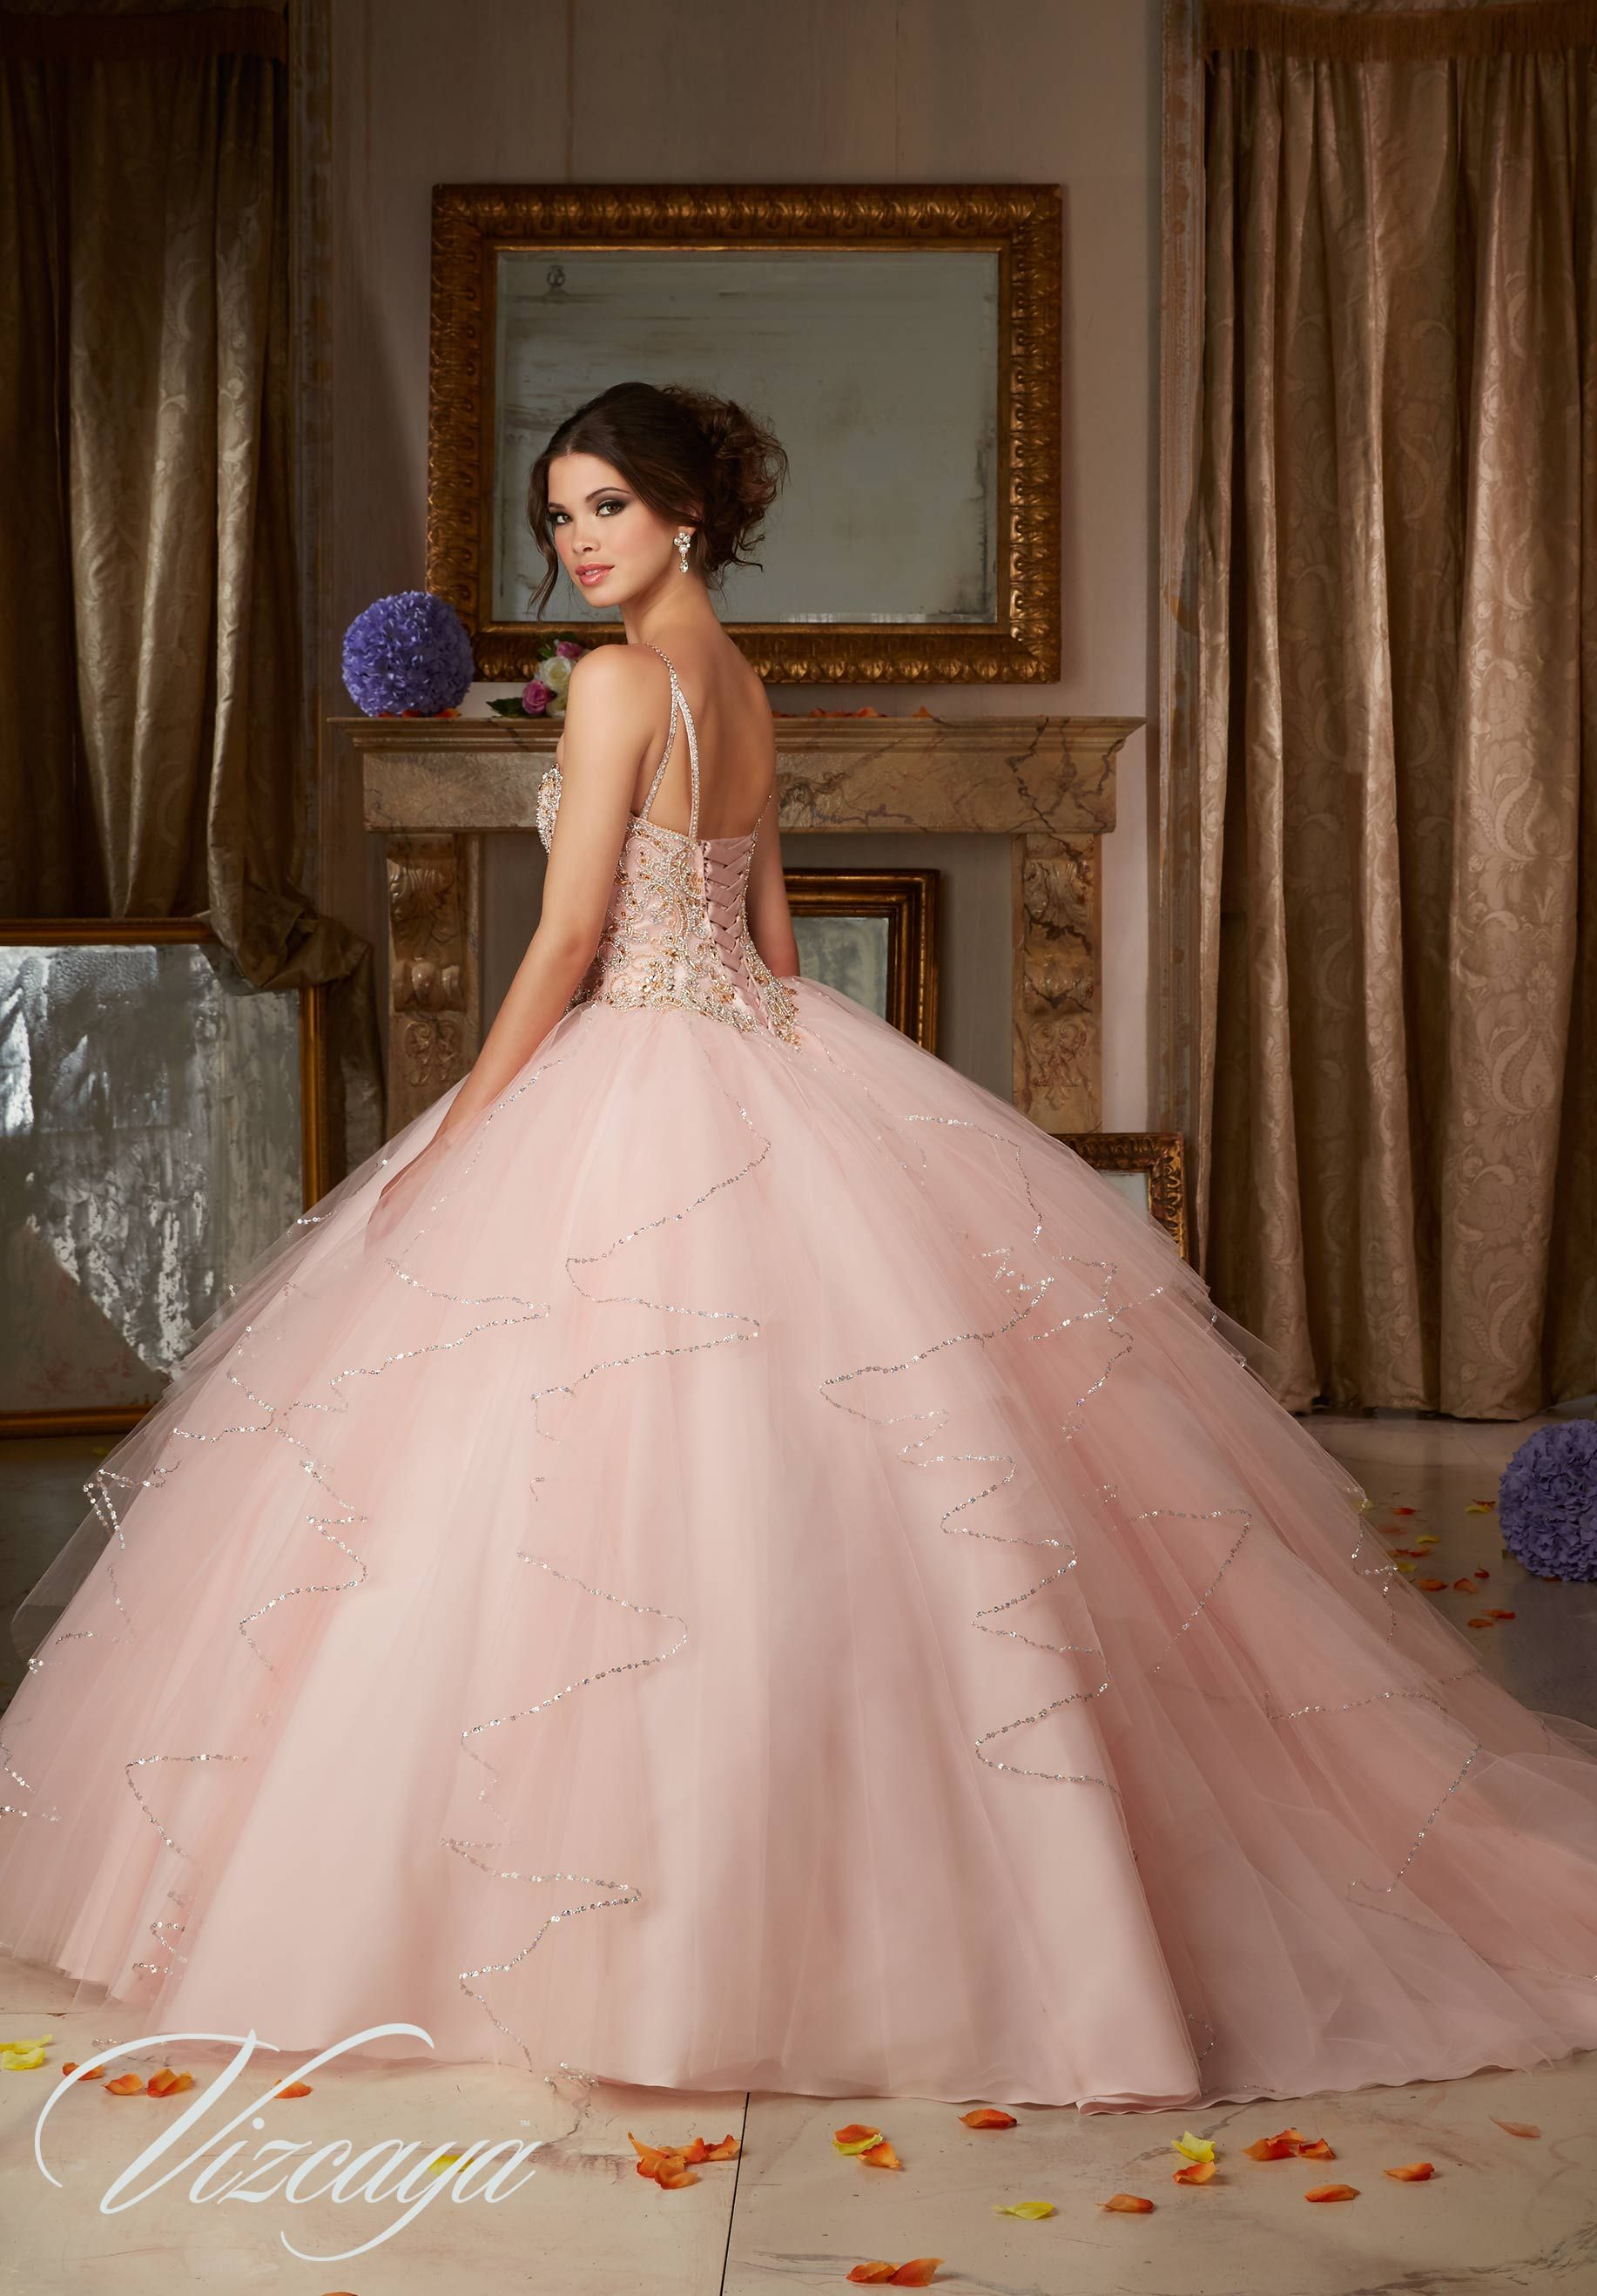 Tulle Rose Gold Quinceañera Dresses Ideas  Rose Gold XV dress by